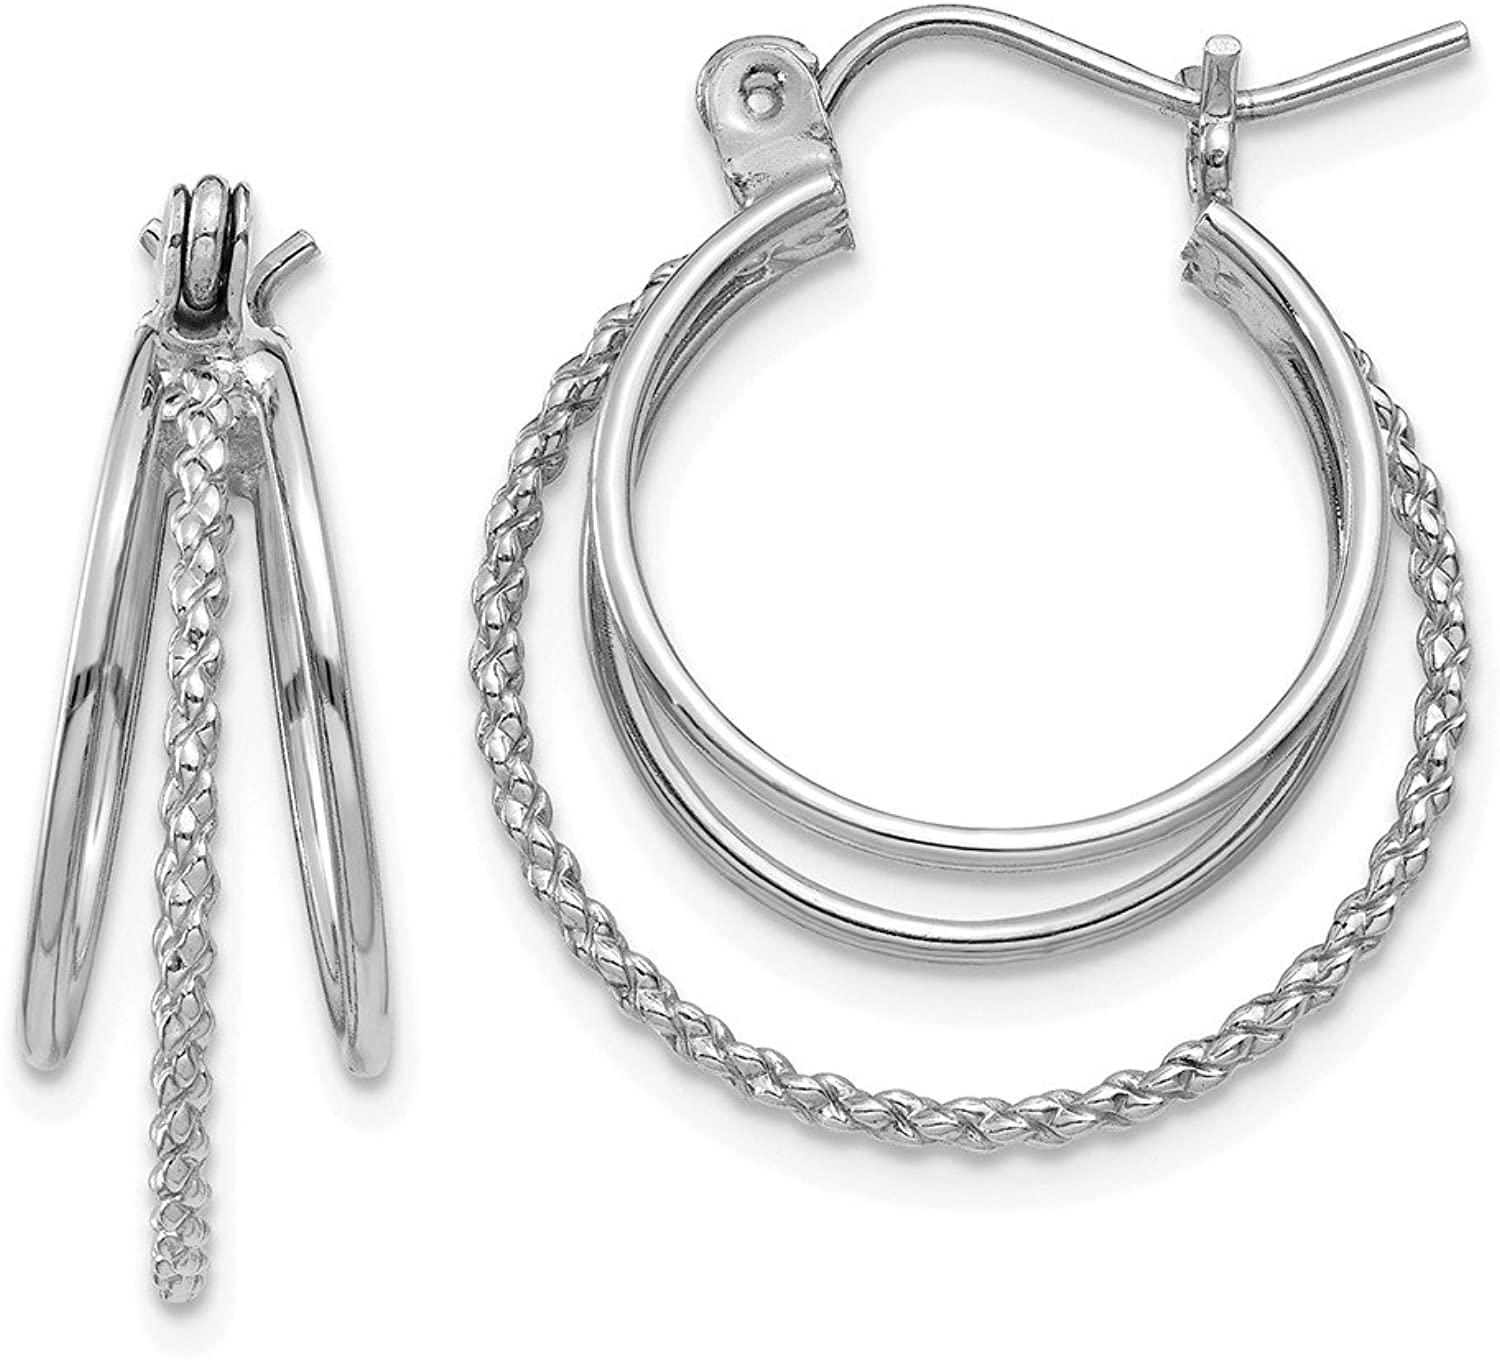 Beautiful White gold 14K 14k White gold Polished and Textured Circle Hoop Earrings